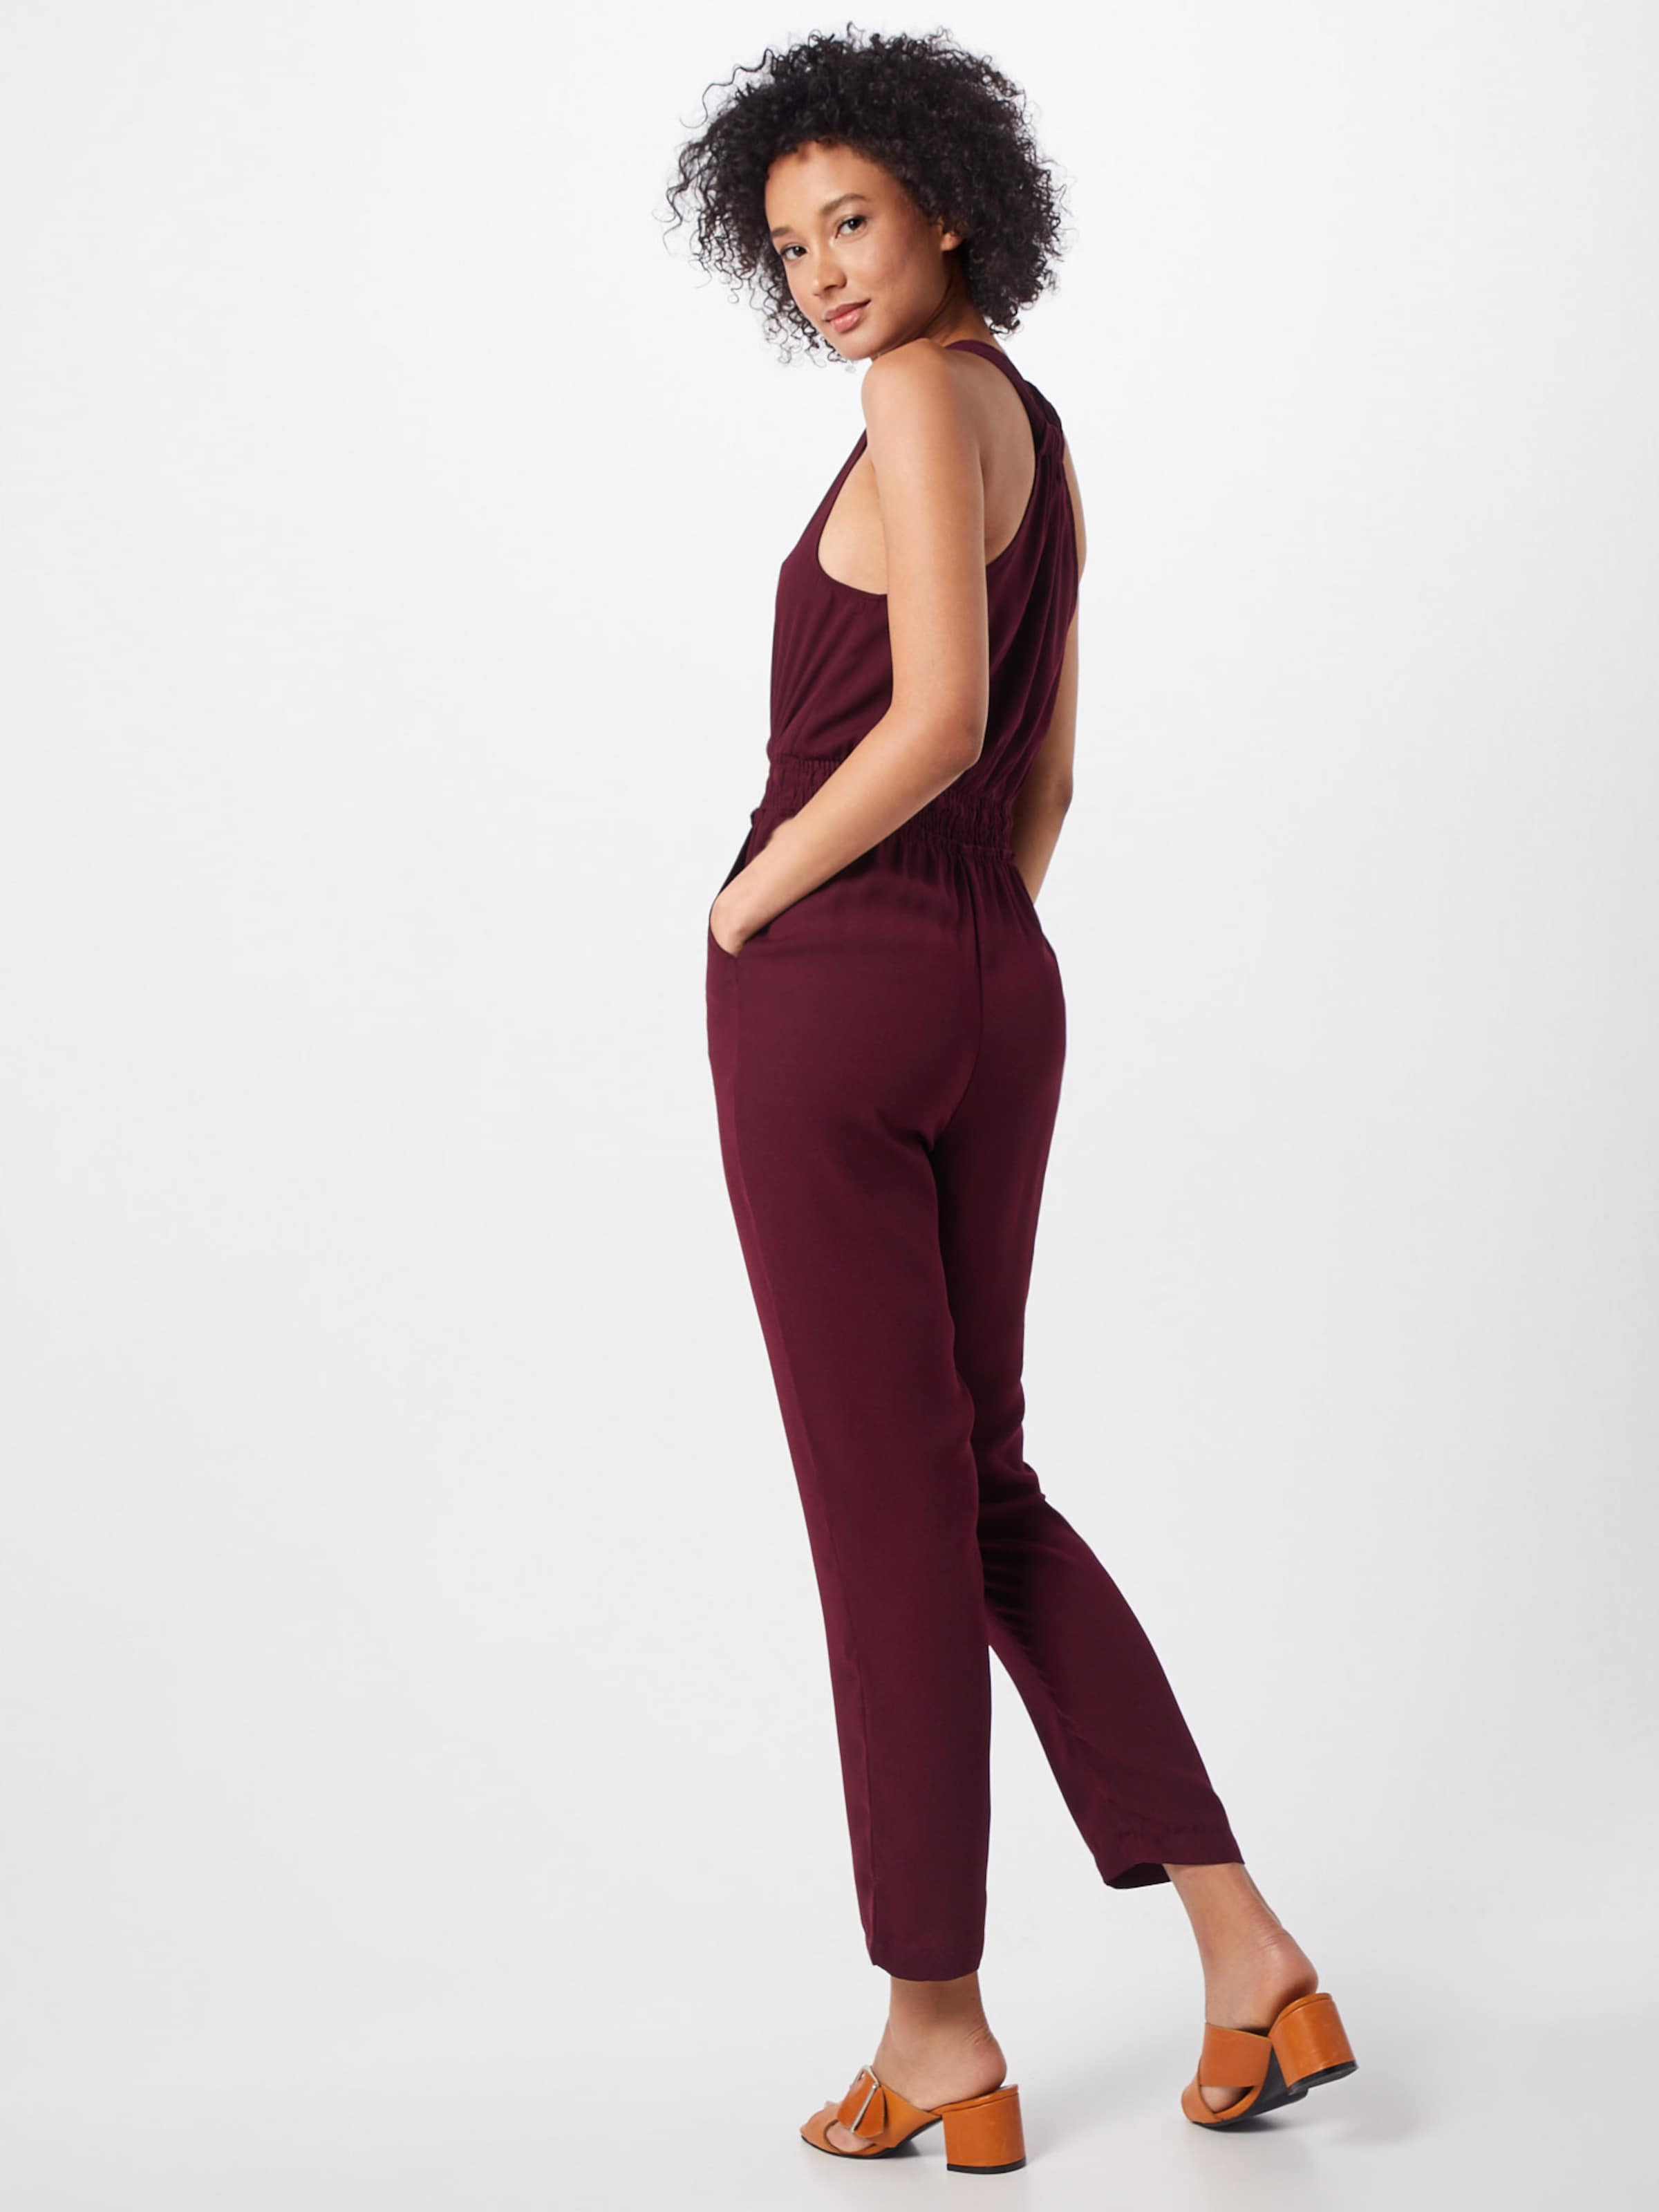 Aubergine About Jumpsuit 'charlott' In You HE2DW9I